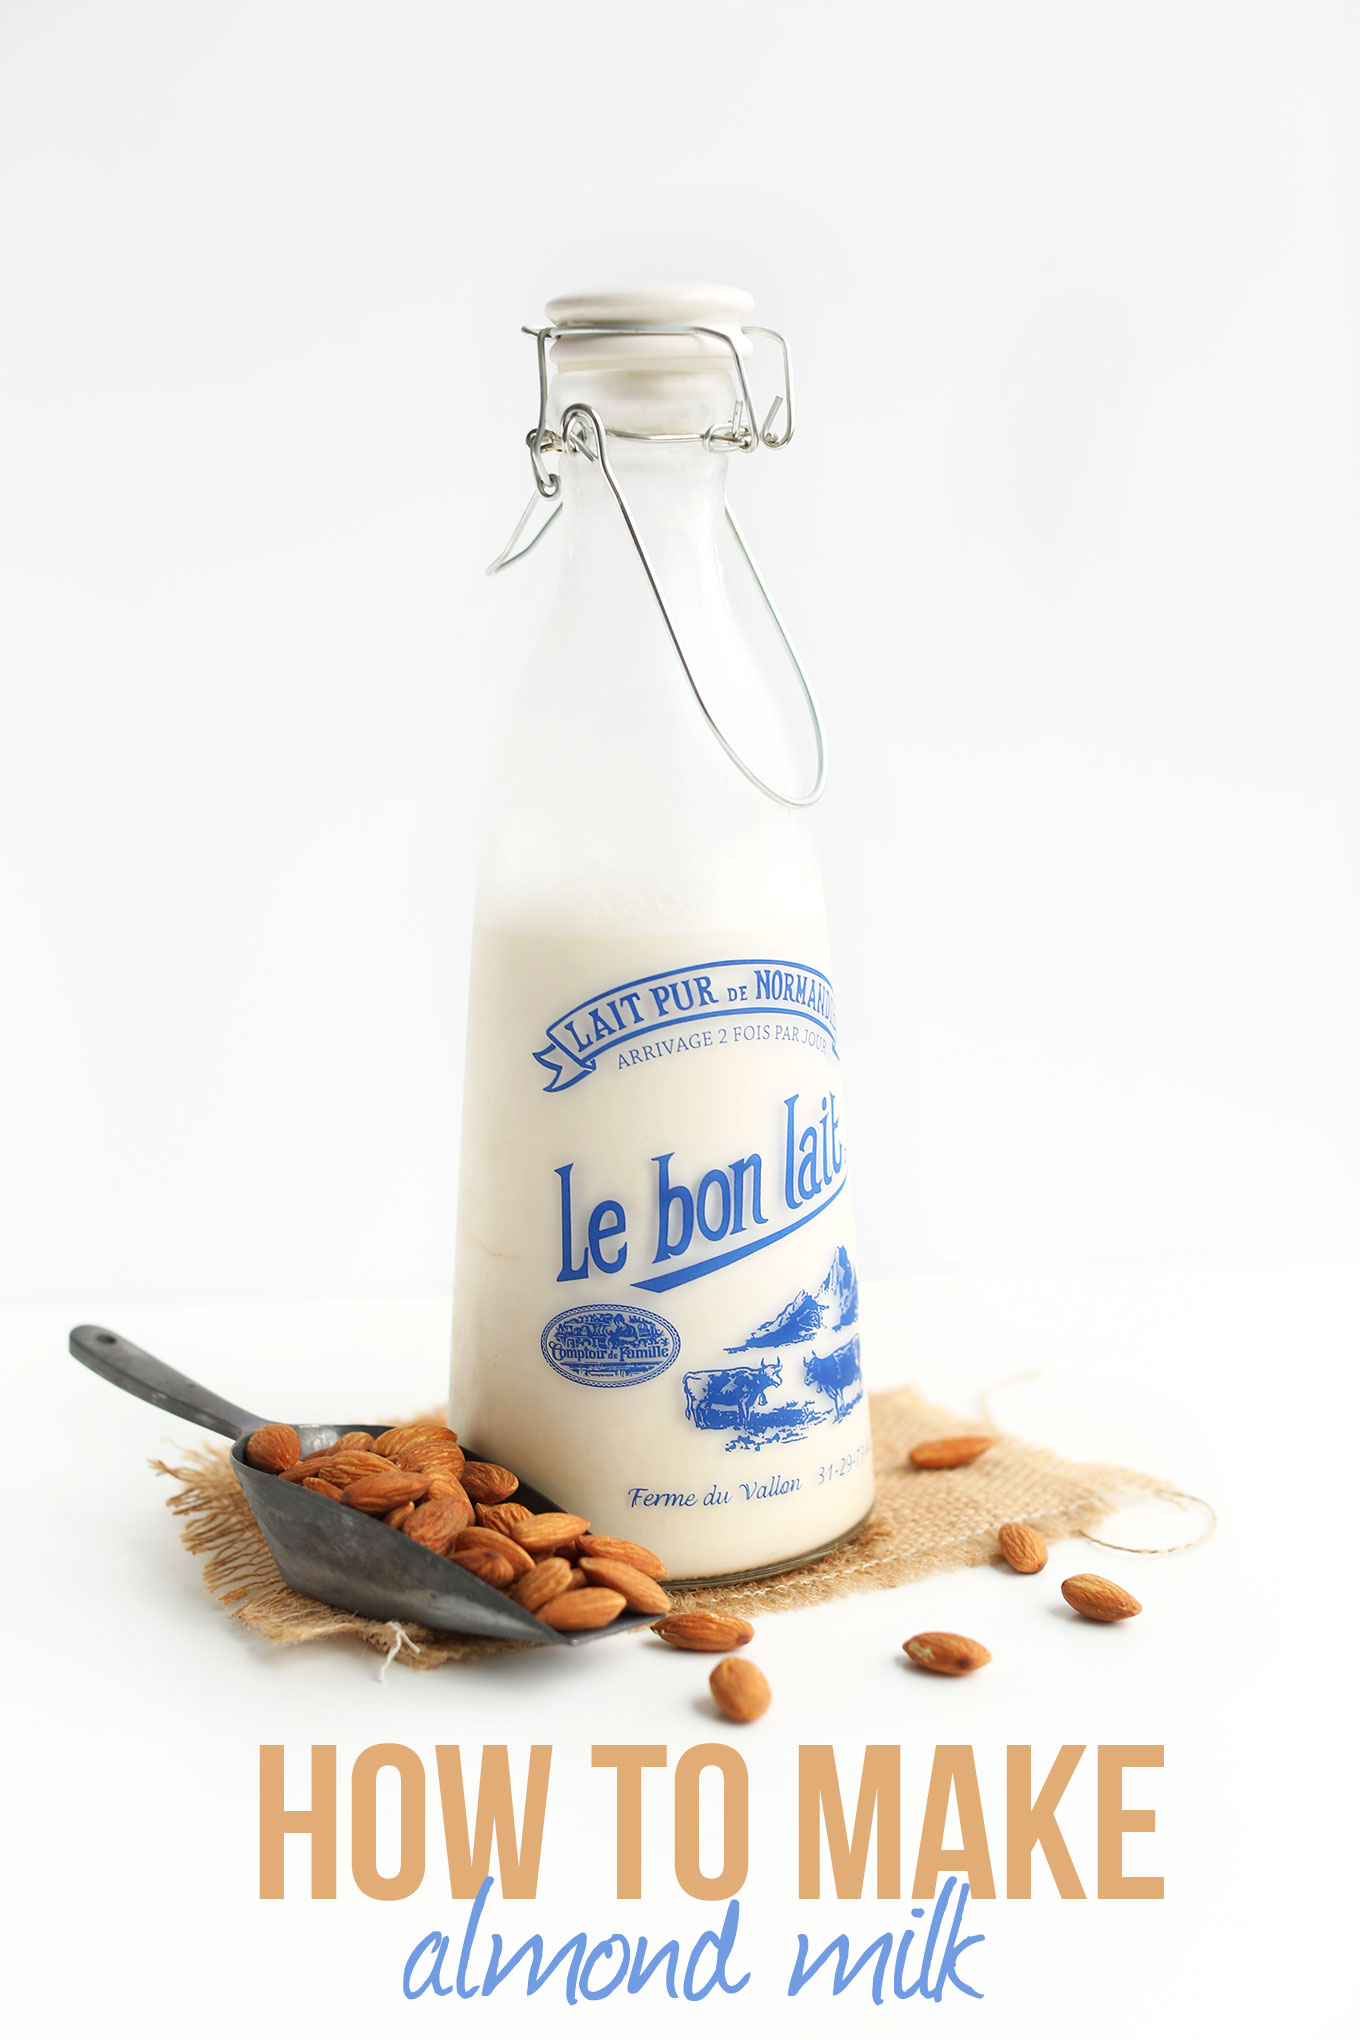 Jug of almond milk with text saying How To Make Almond Milk